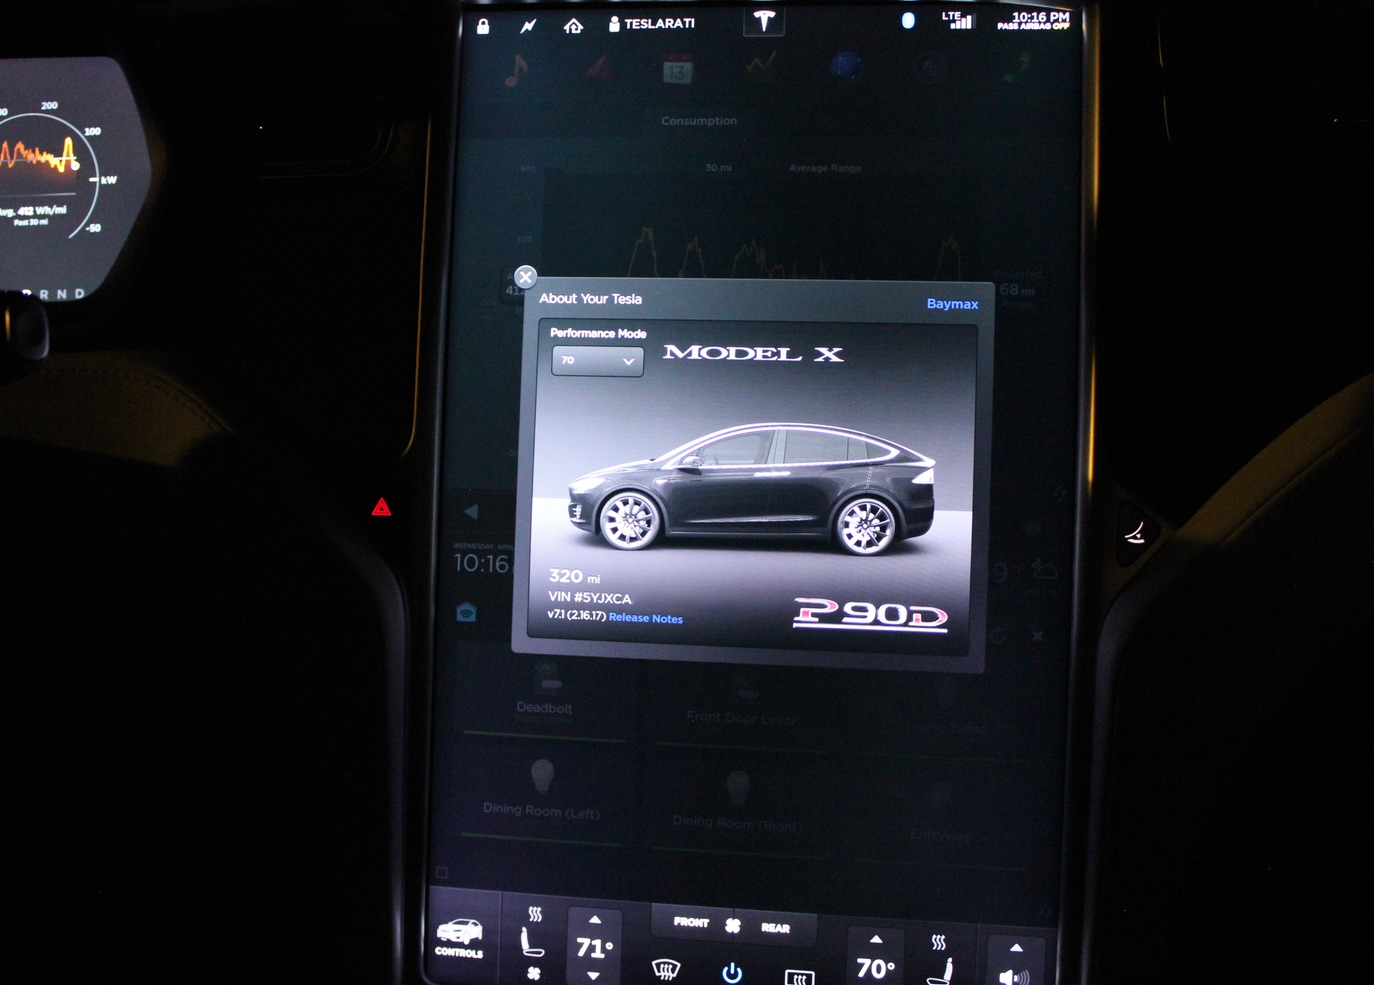 Tesla-Performance-Mode-Easter-Egg-3-Touchscreen